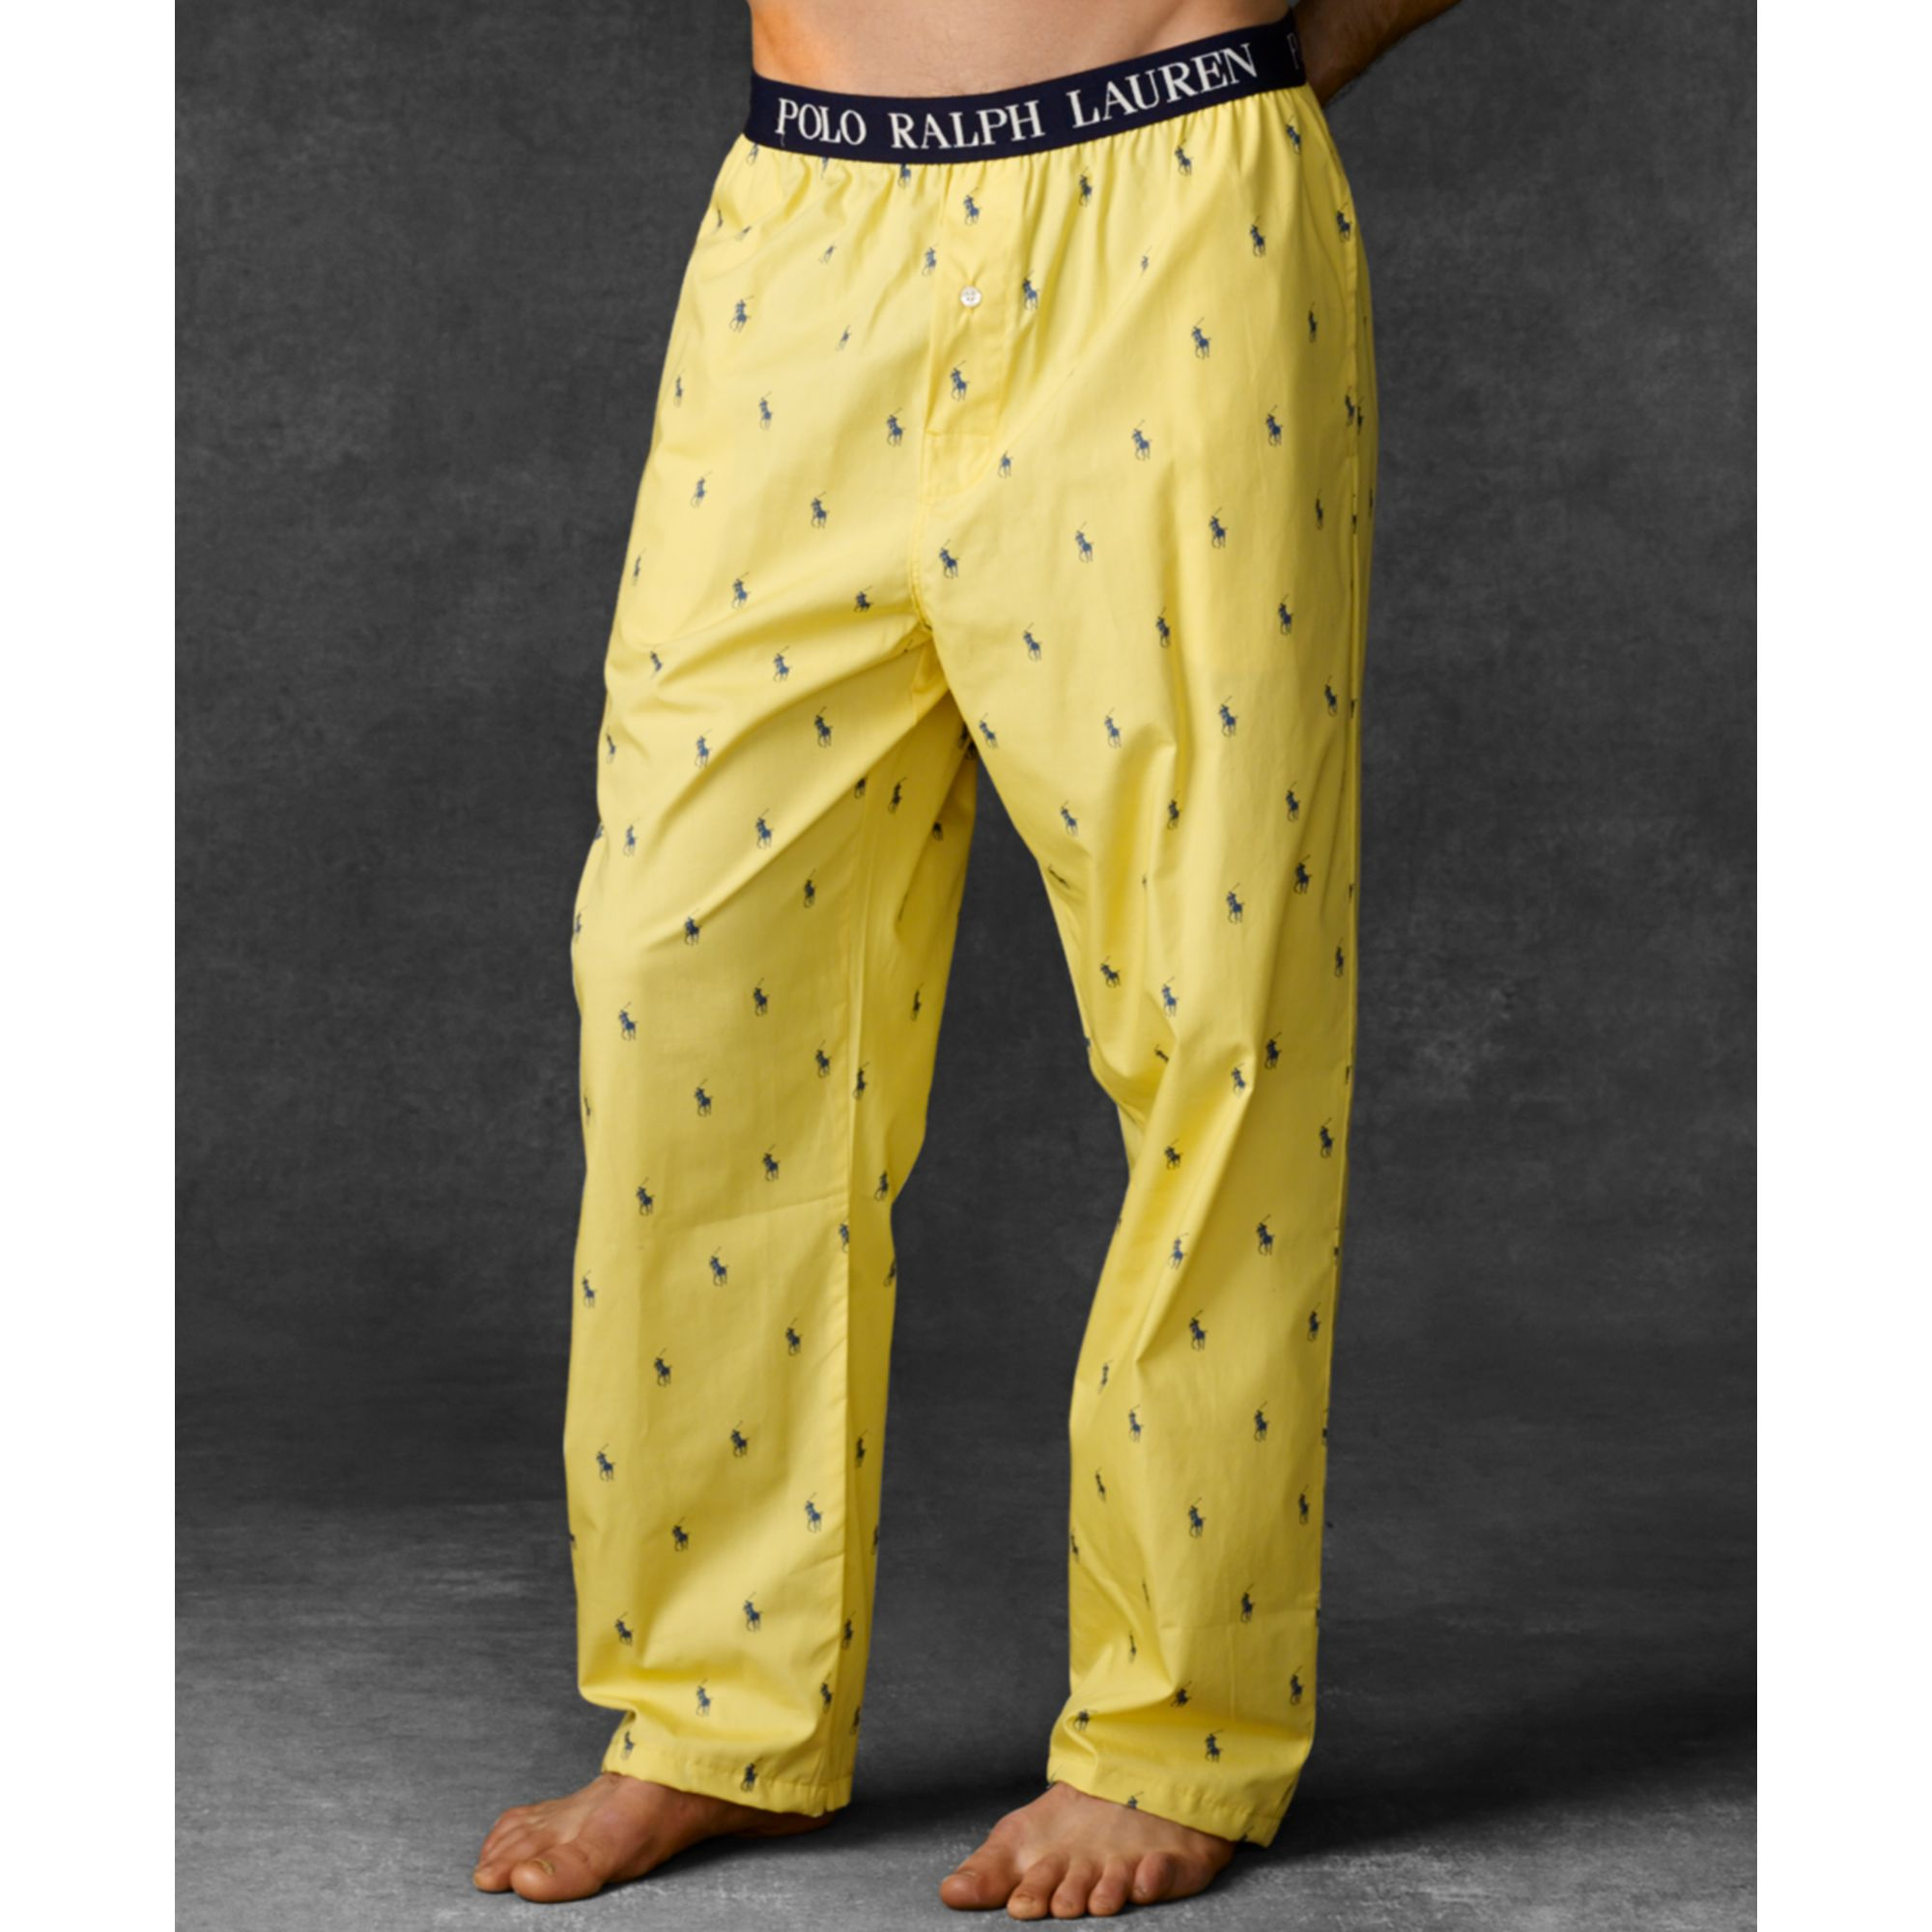 Find great deals on eBay for mens polo pajamas. Shop with confidence.